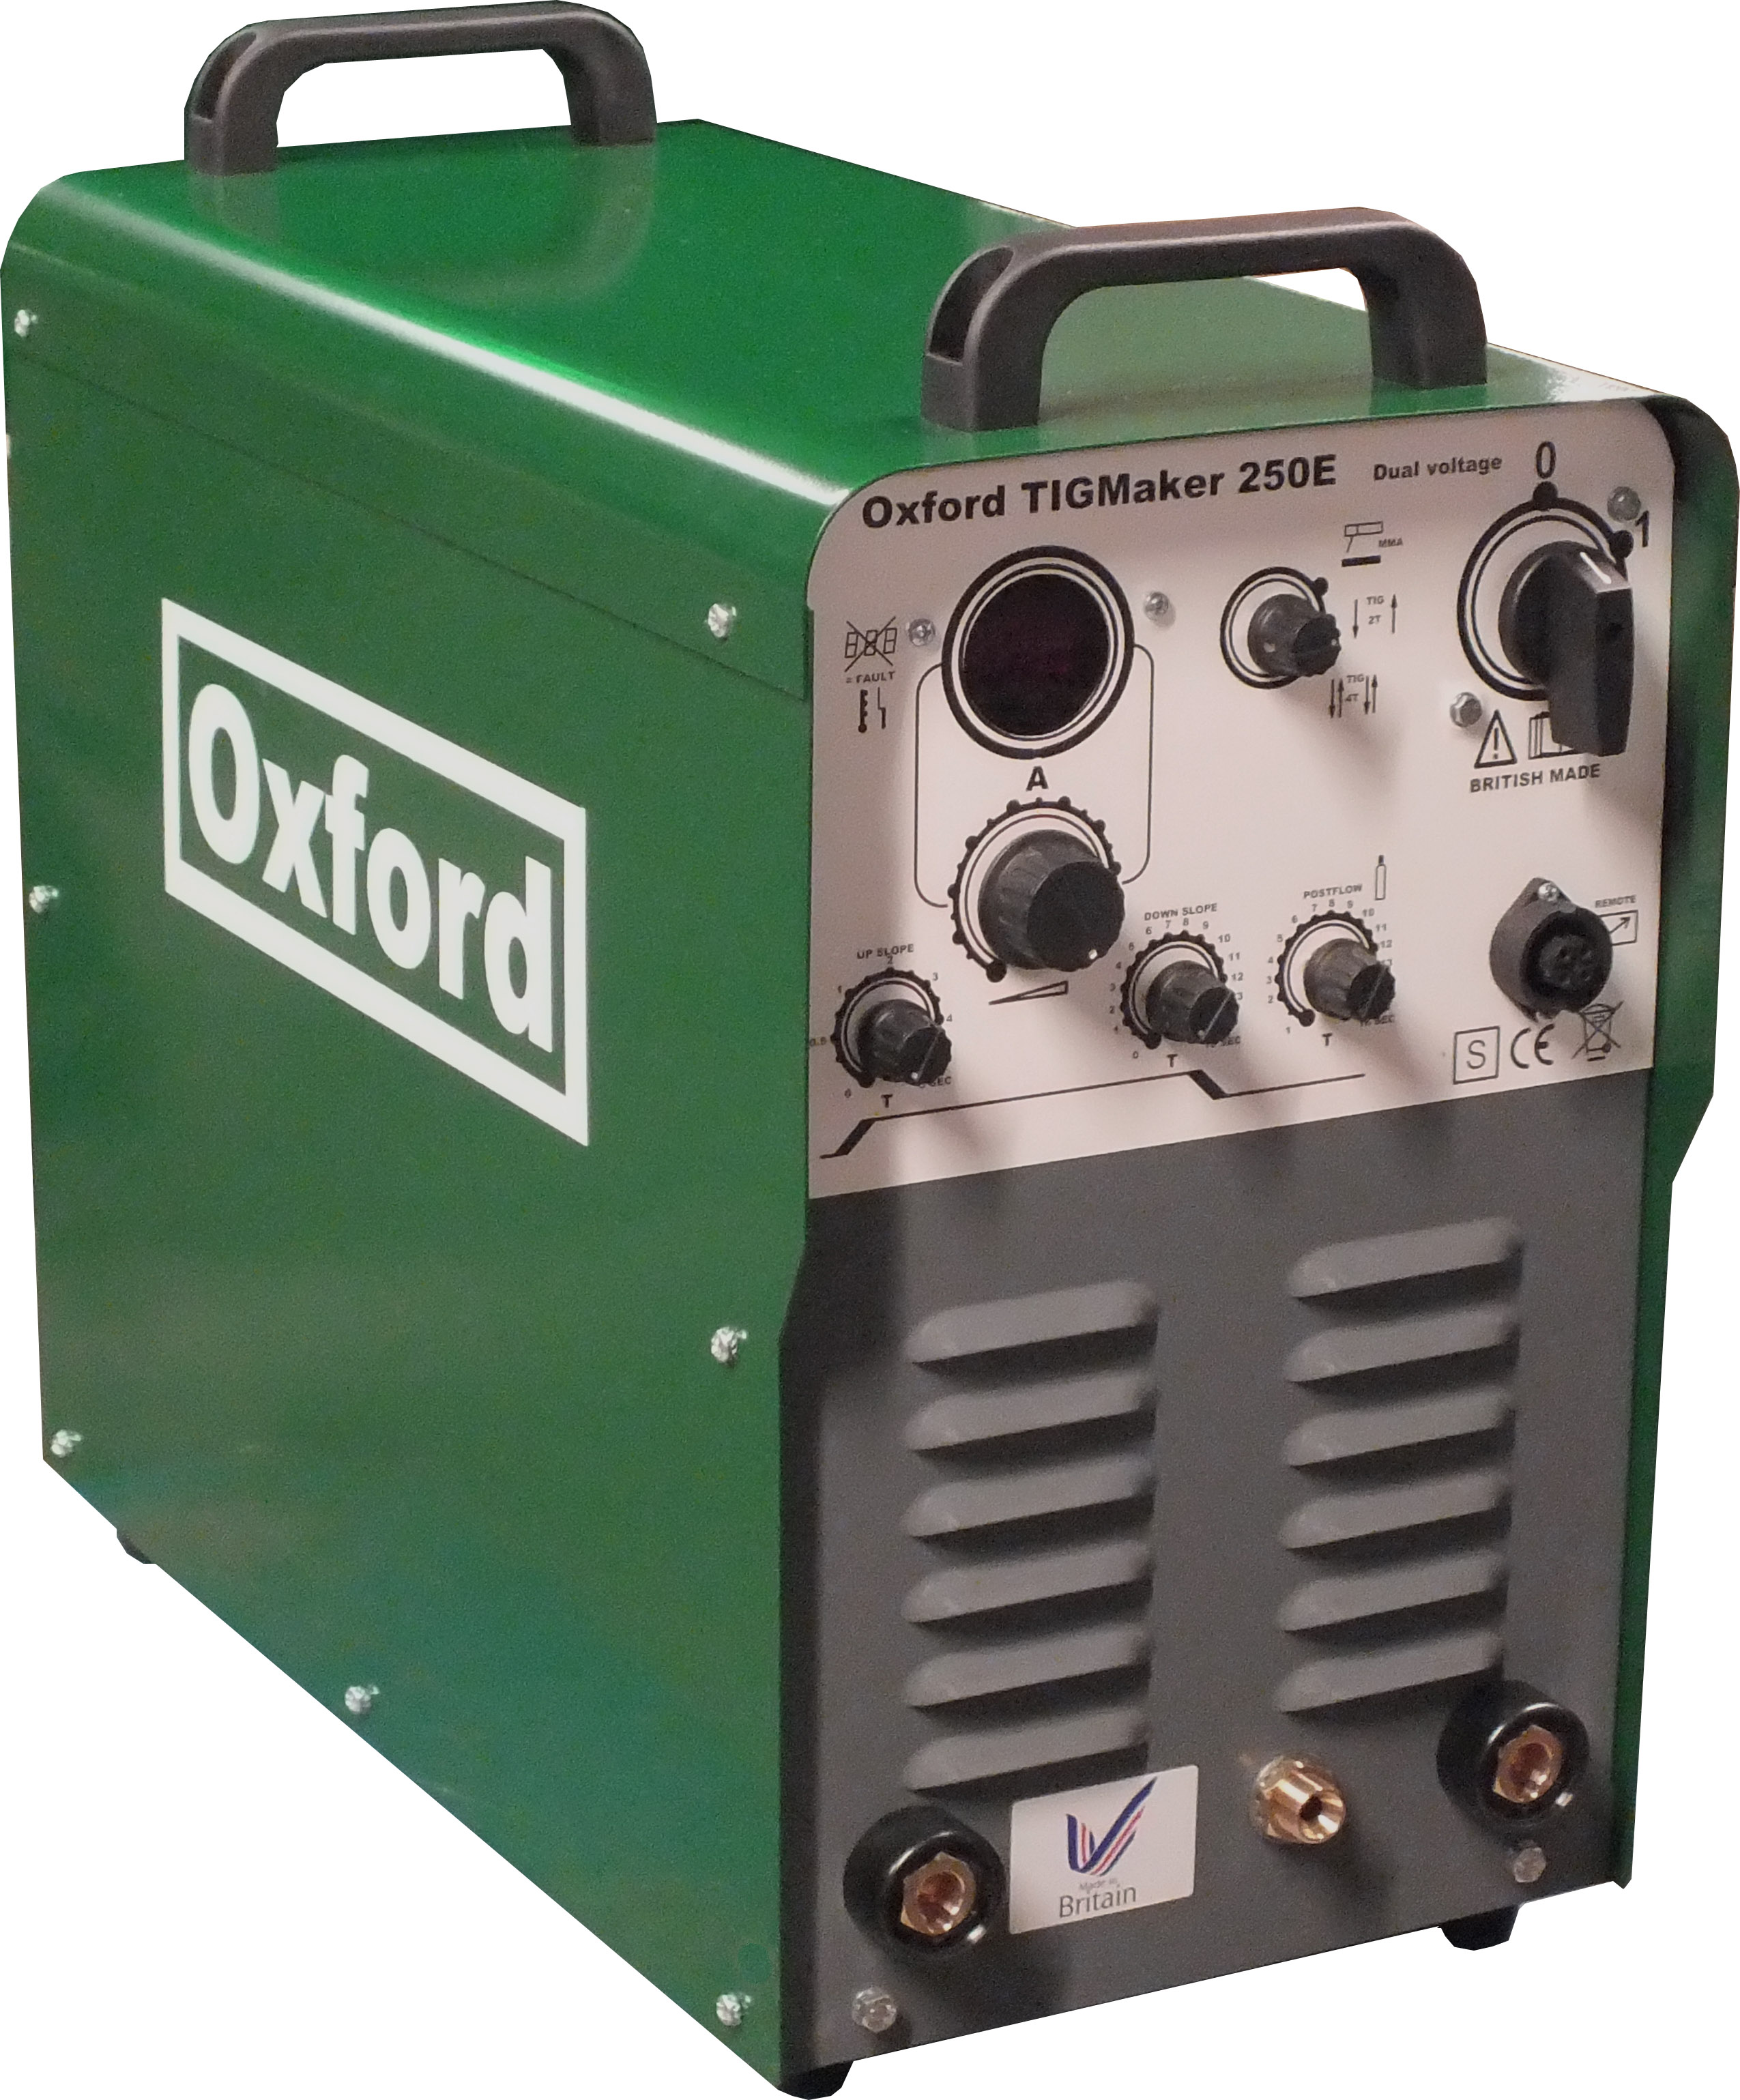 Oxford  TIGMaker 250E dual voltage 230/400V